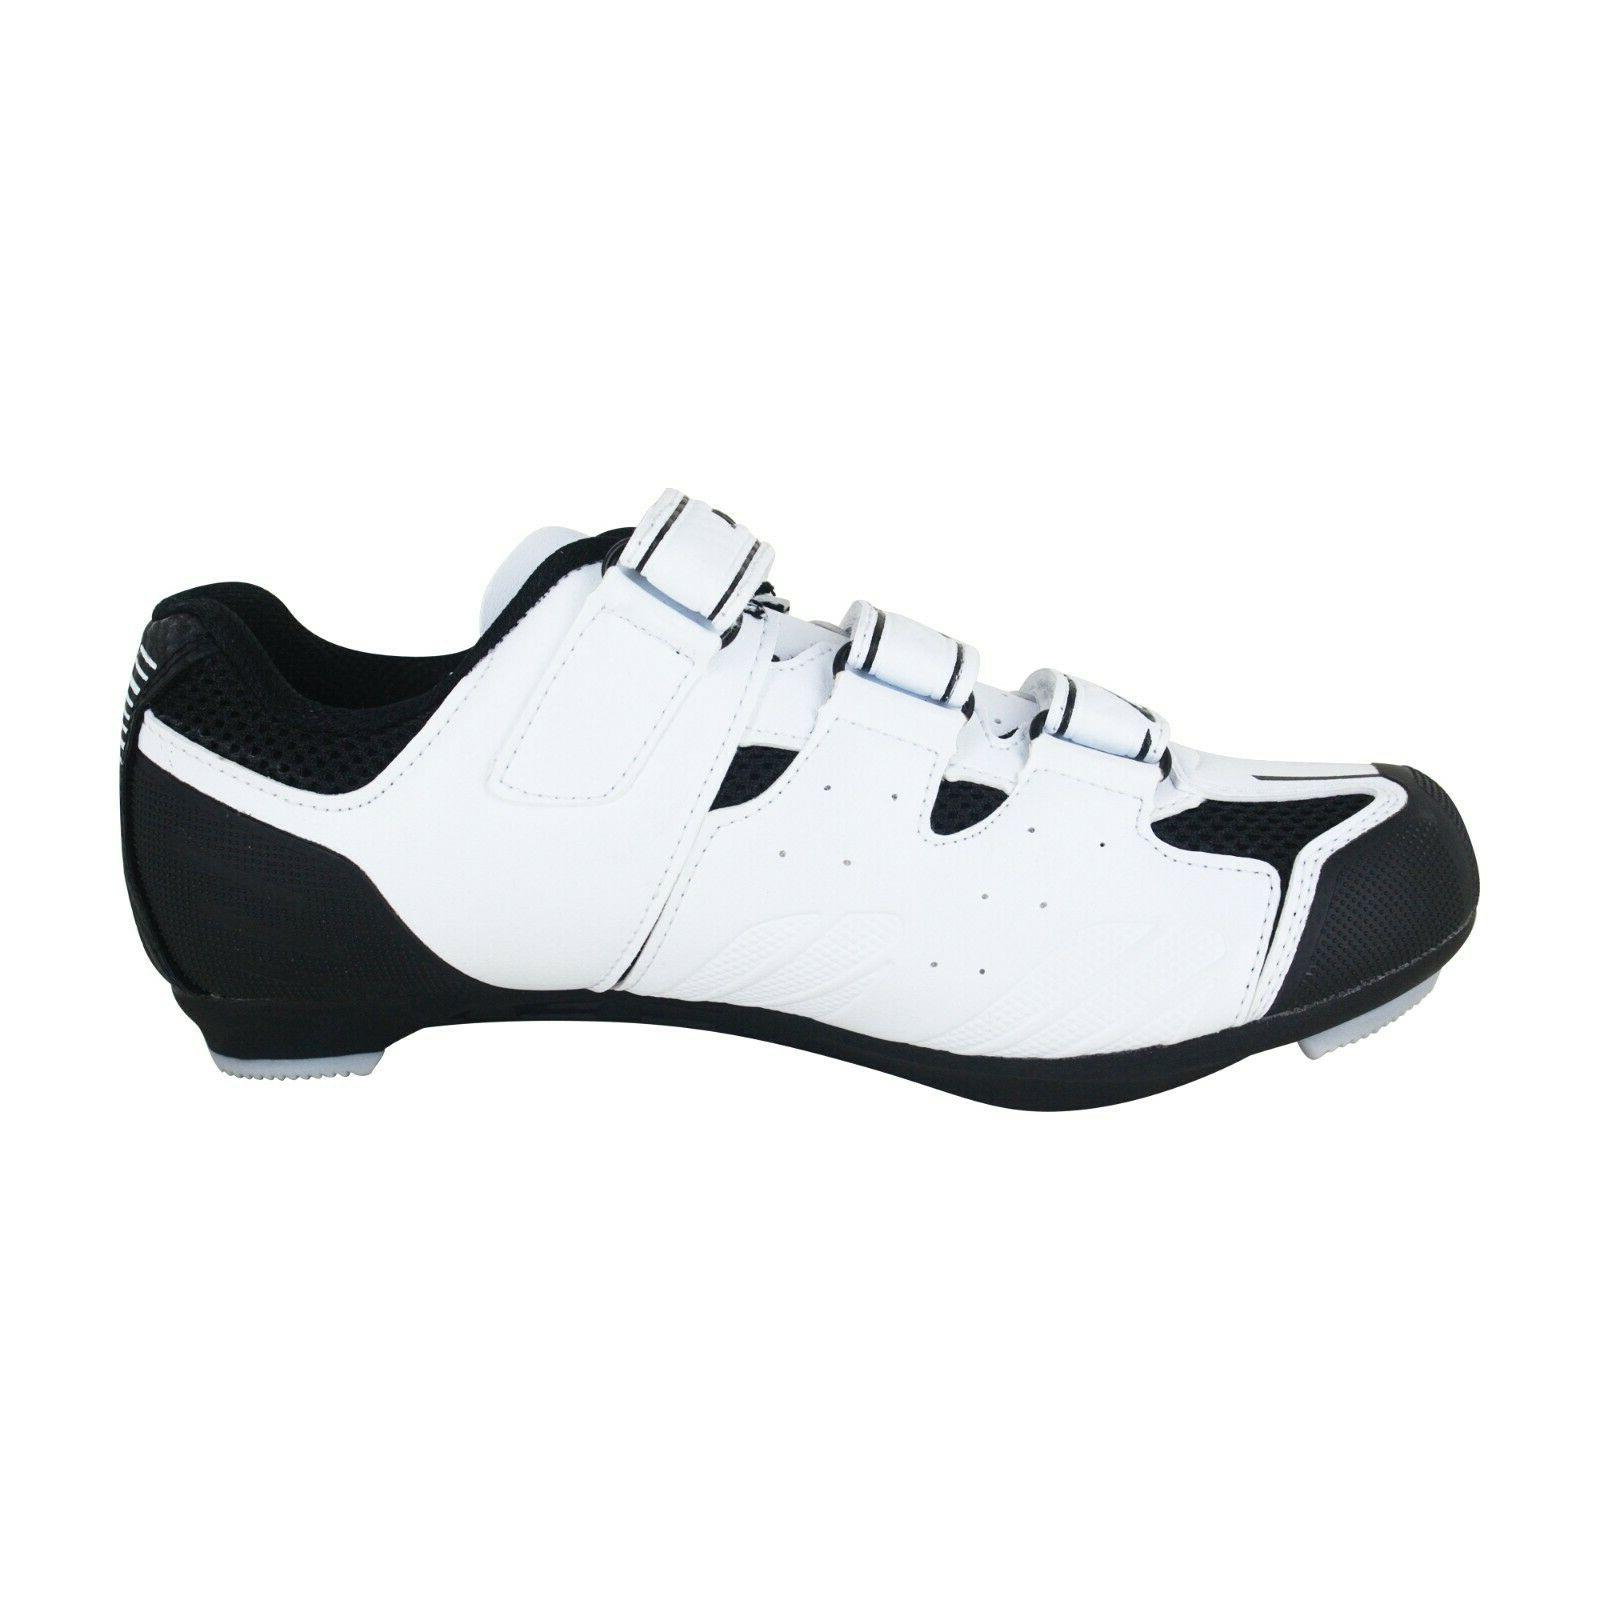 Zol Road Shoes with SPD